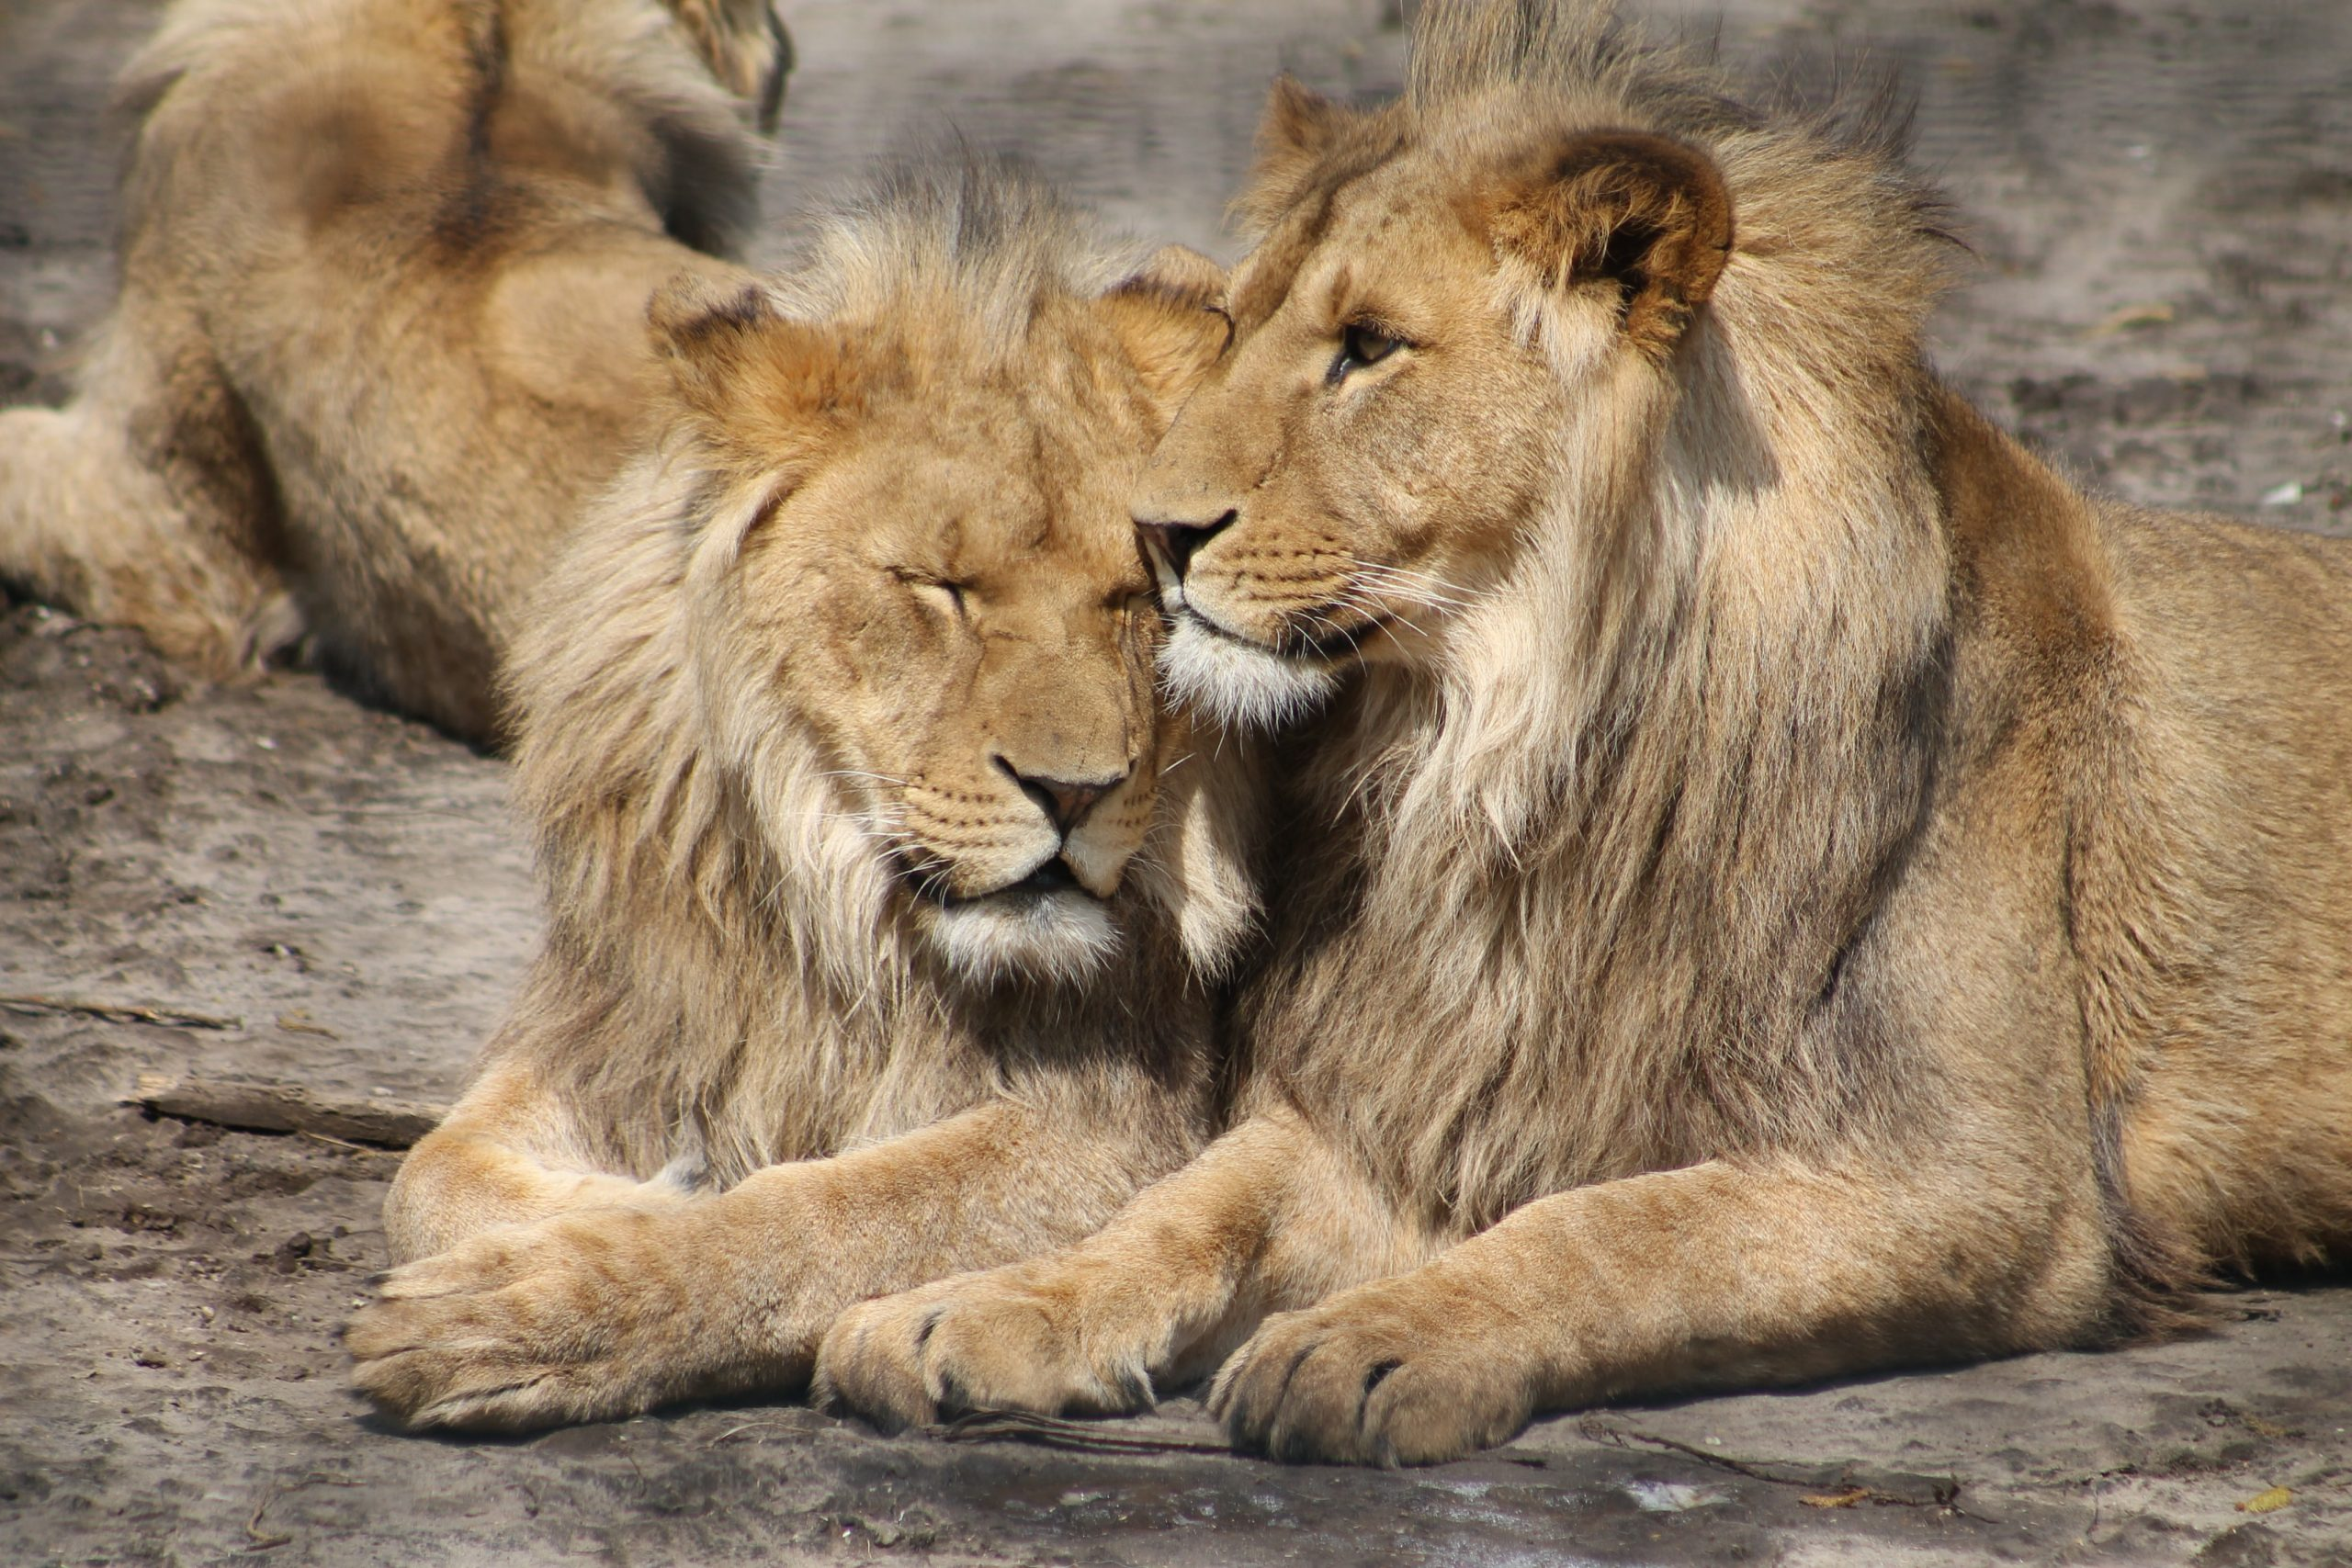 Lions in a park